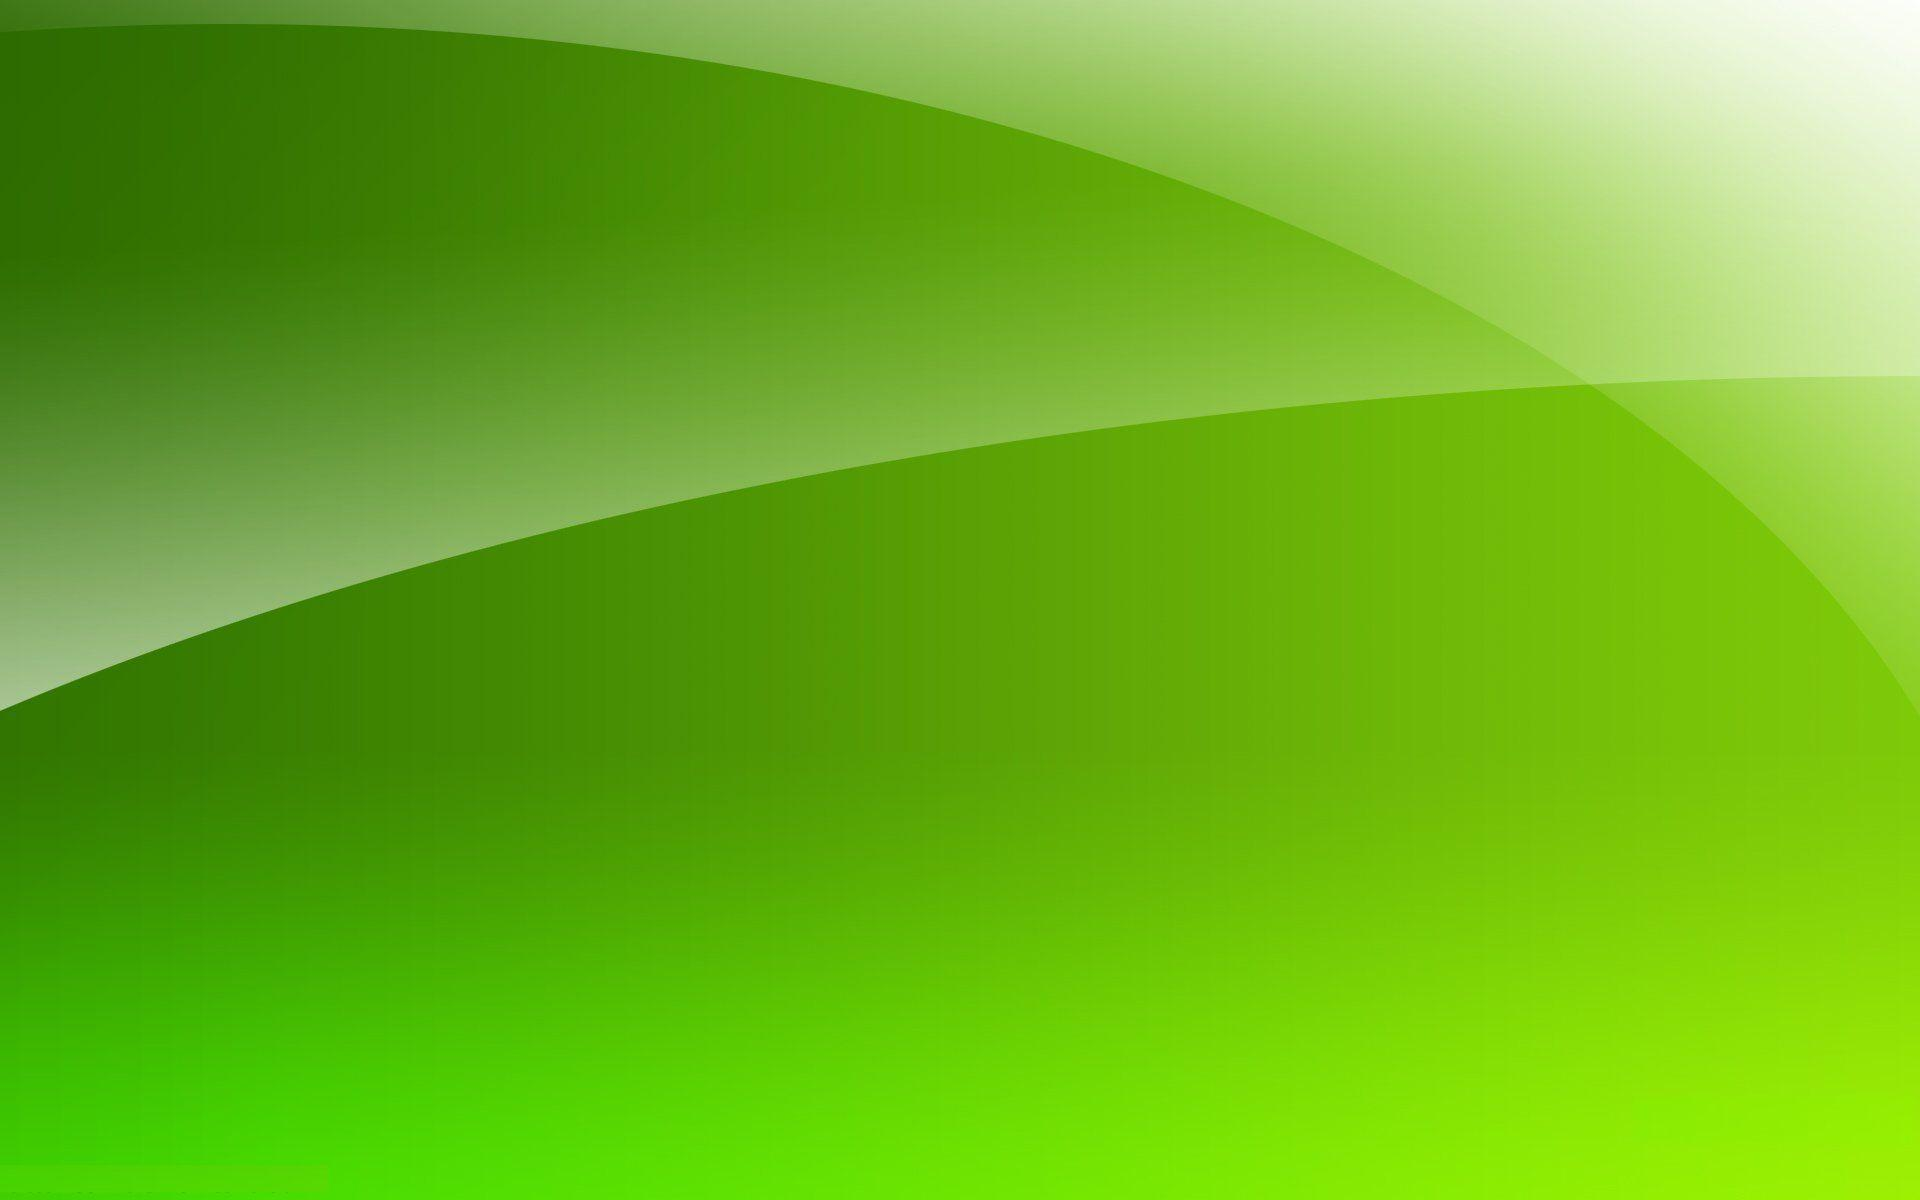 Green Backgrounds Wallpapers 1920x1200